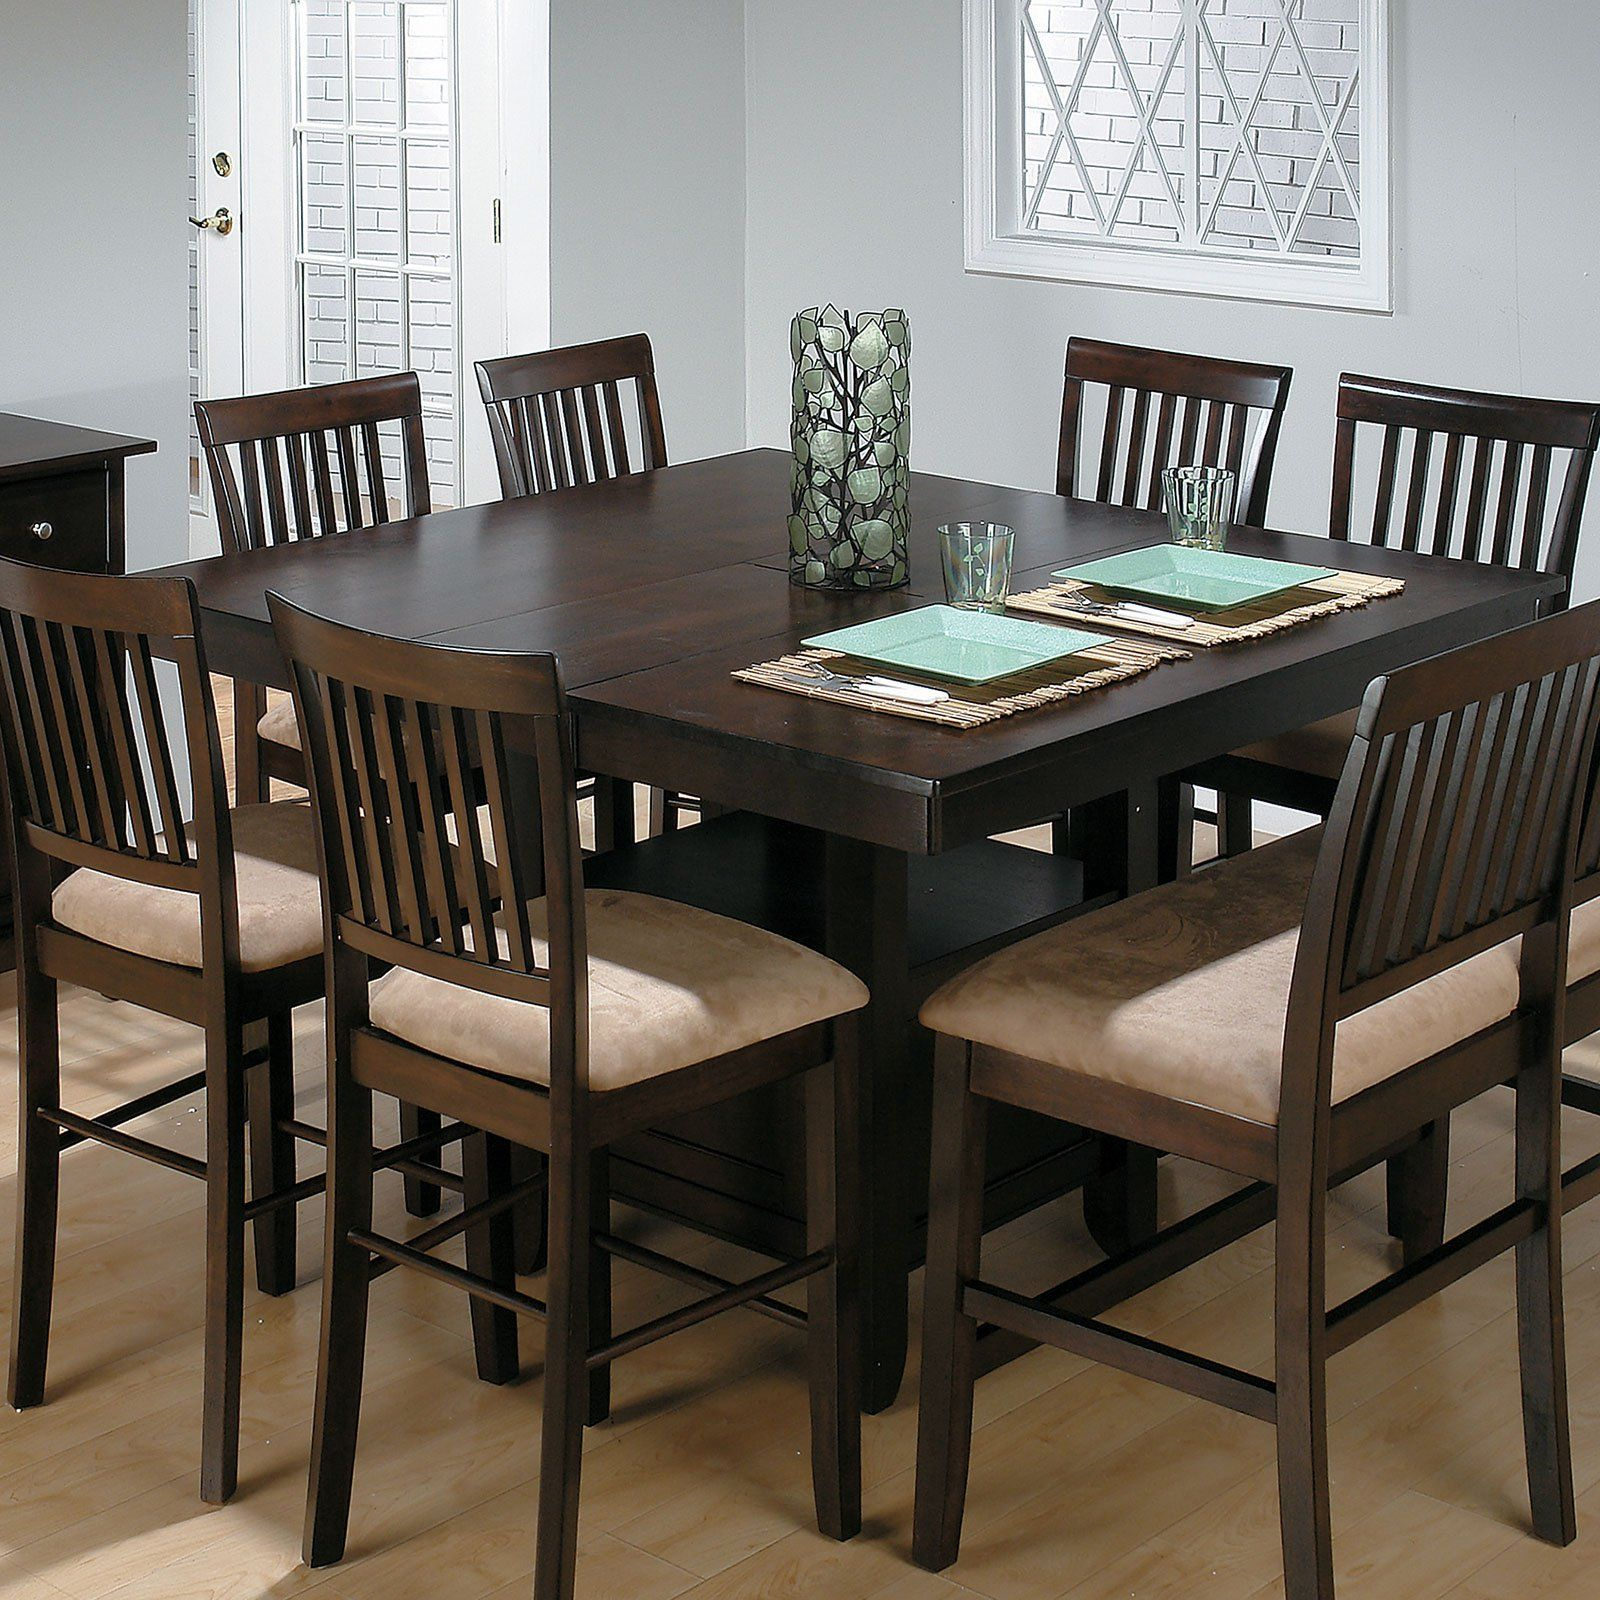 38++ Dining room table with leaf and 6 chairs Top